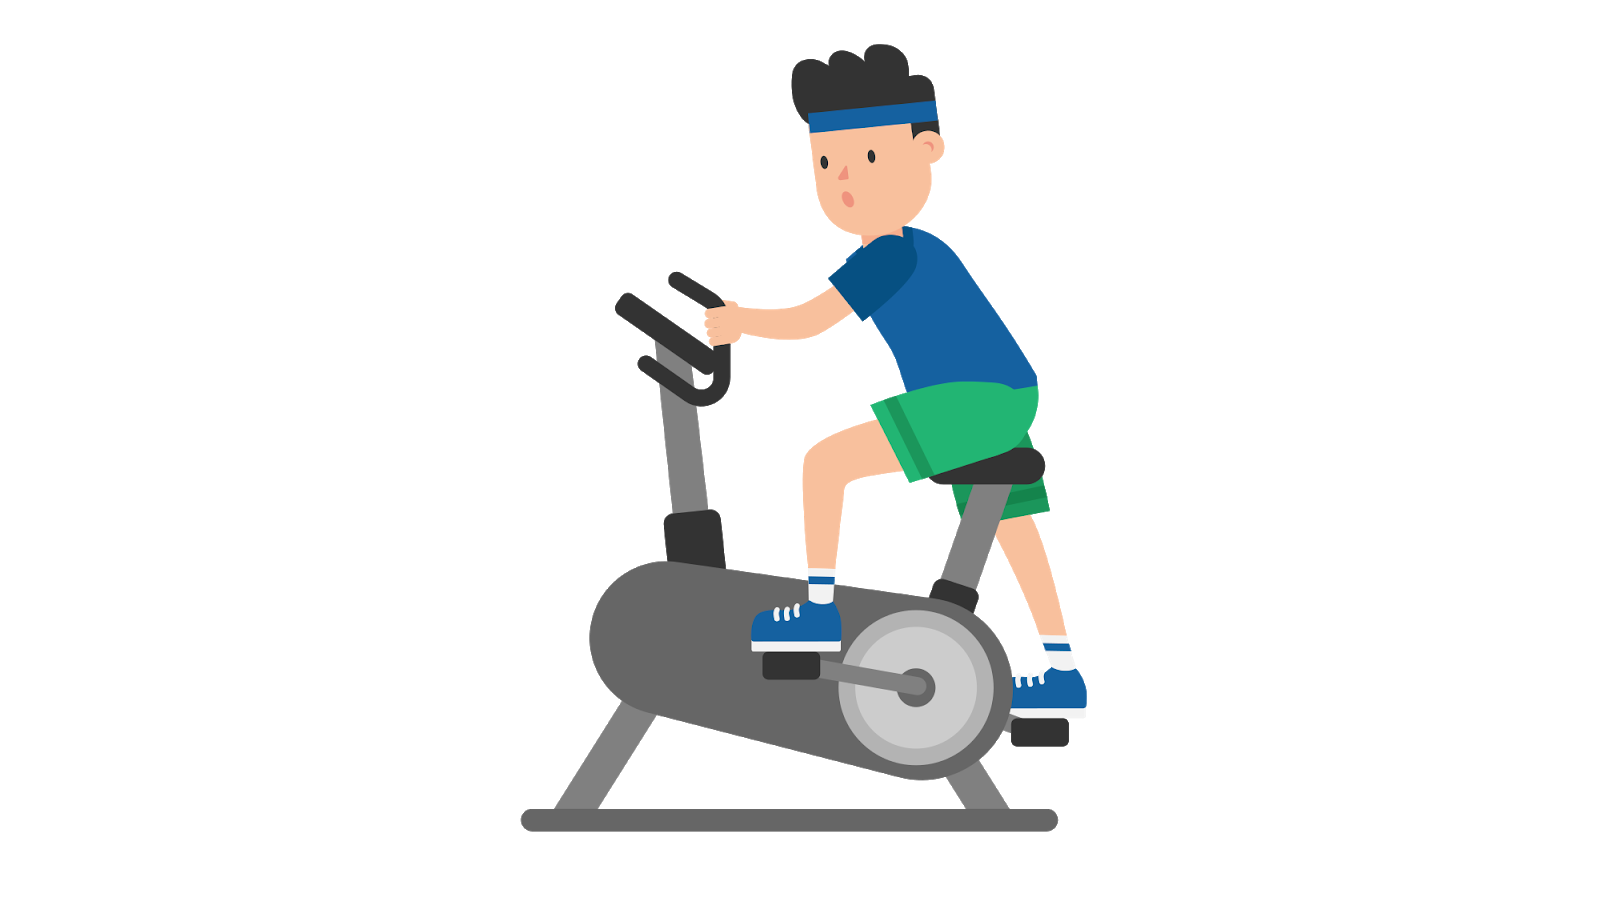 Gym clipart exercise machine. Most commonly used